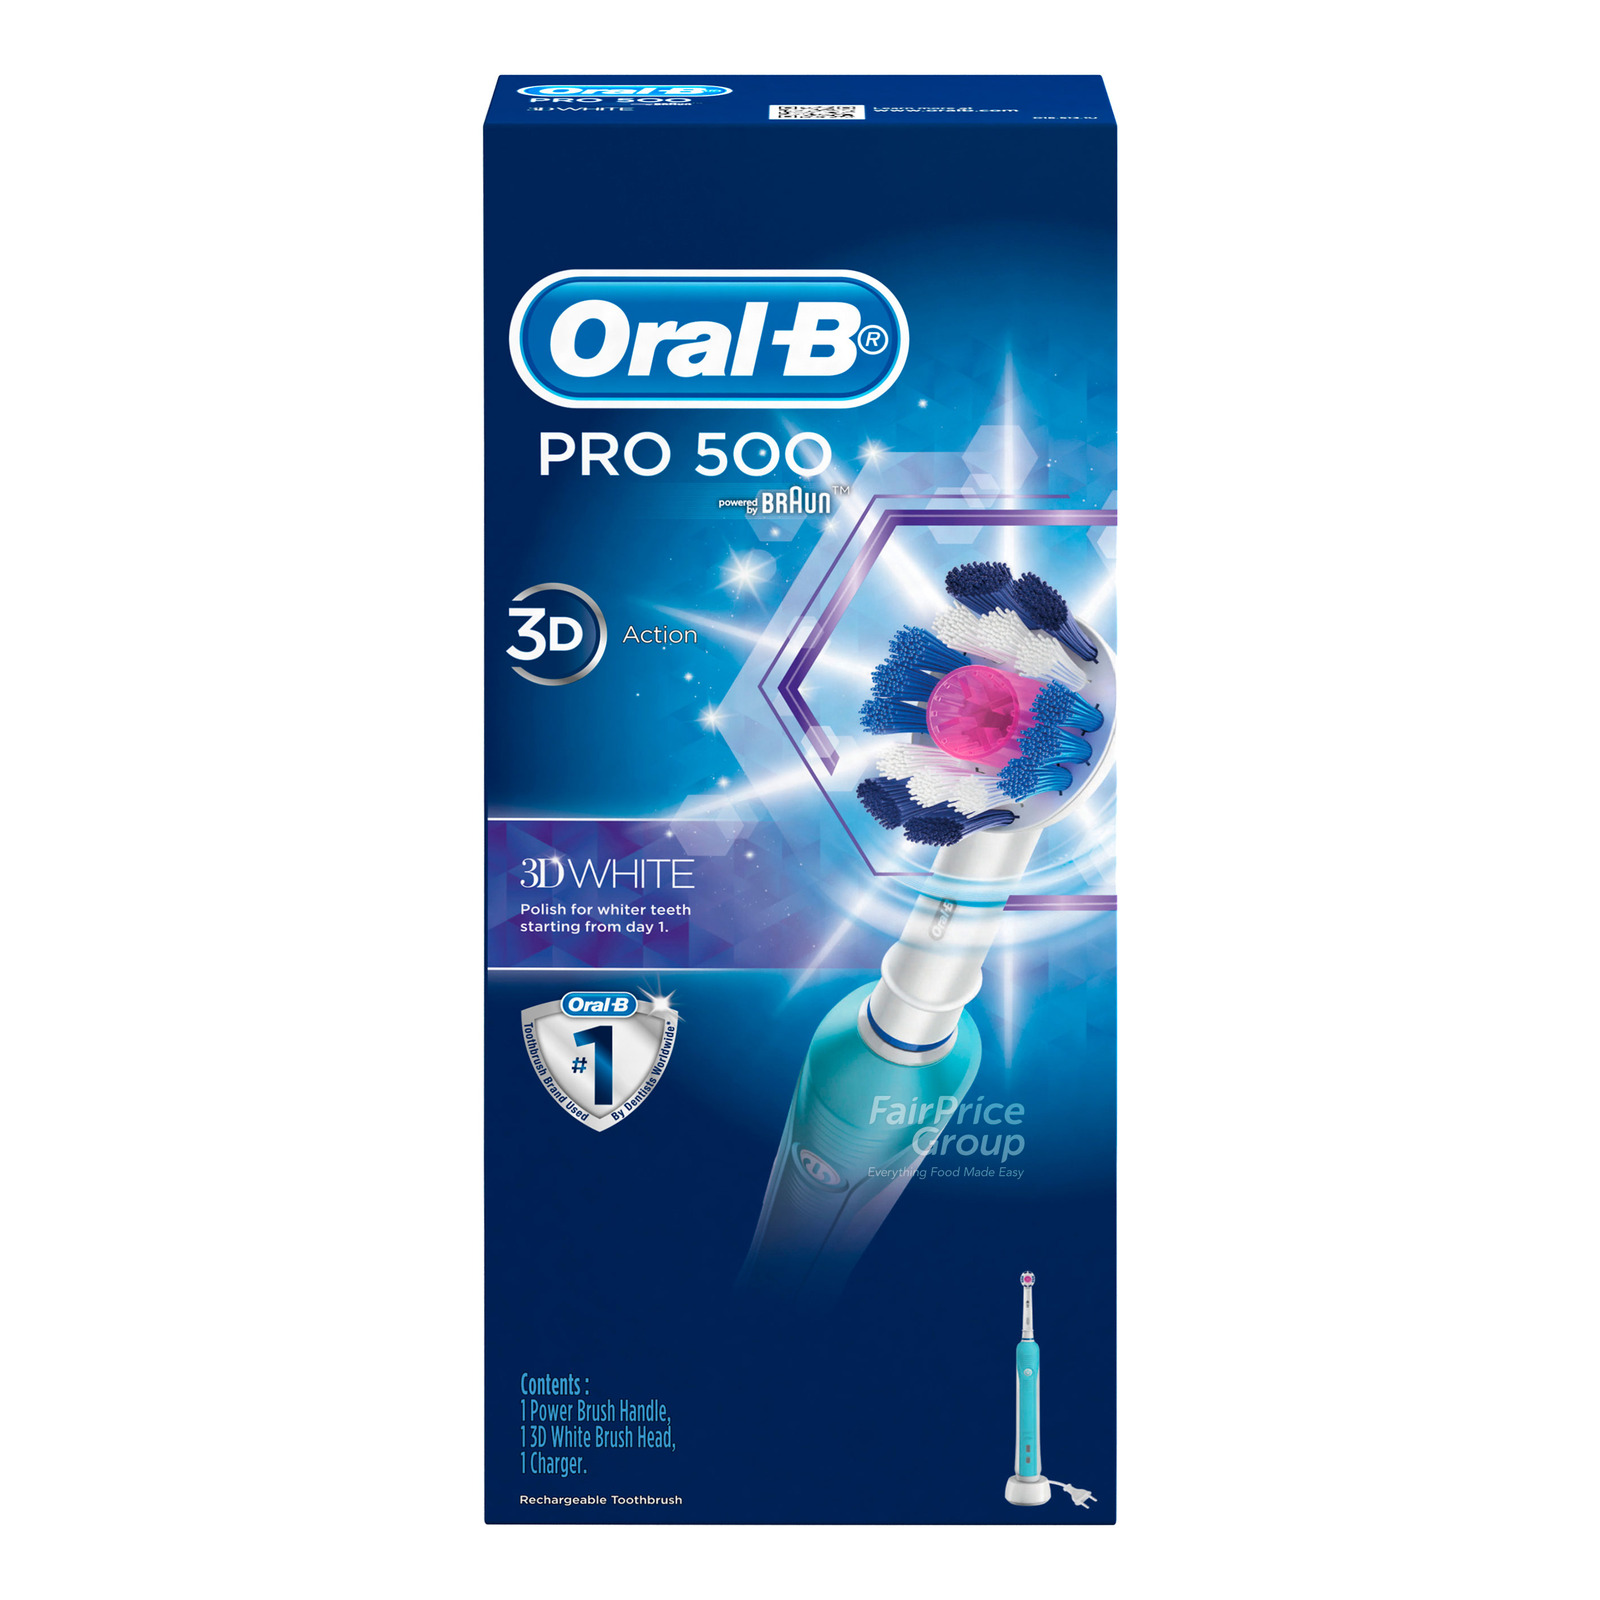 Oral-B Electric Toothbrush - Pro 500 3D White